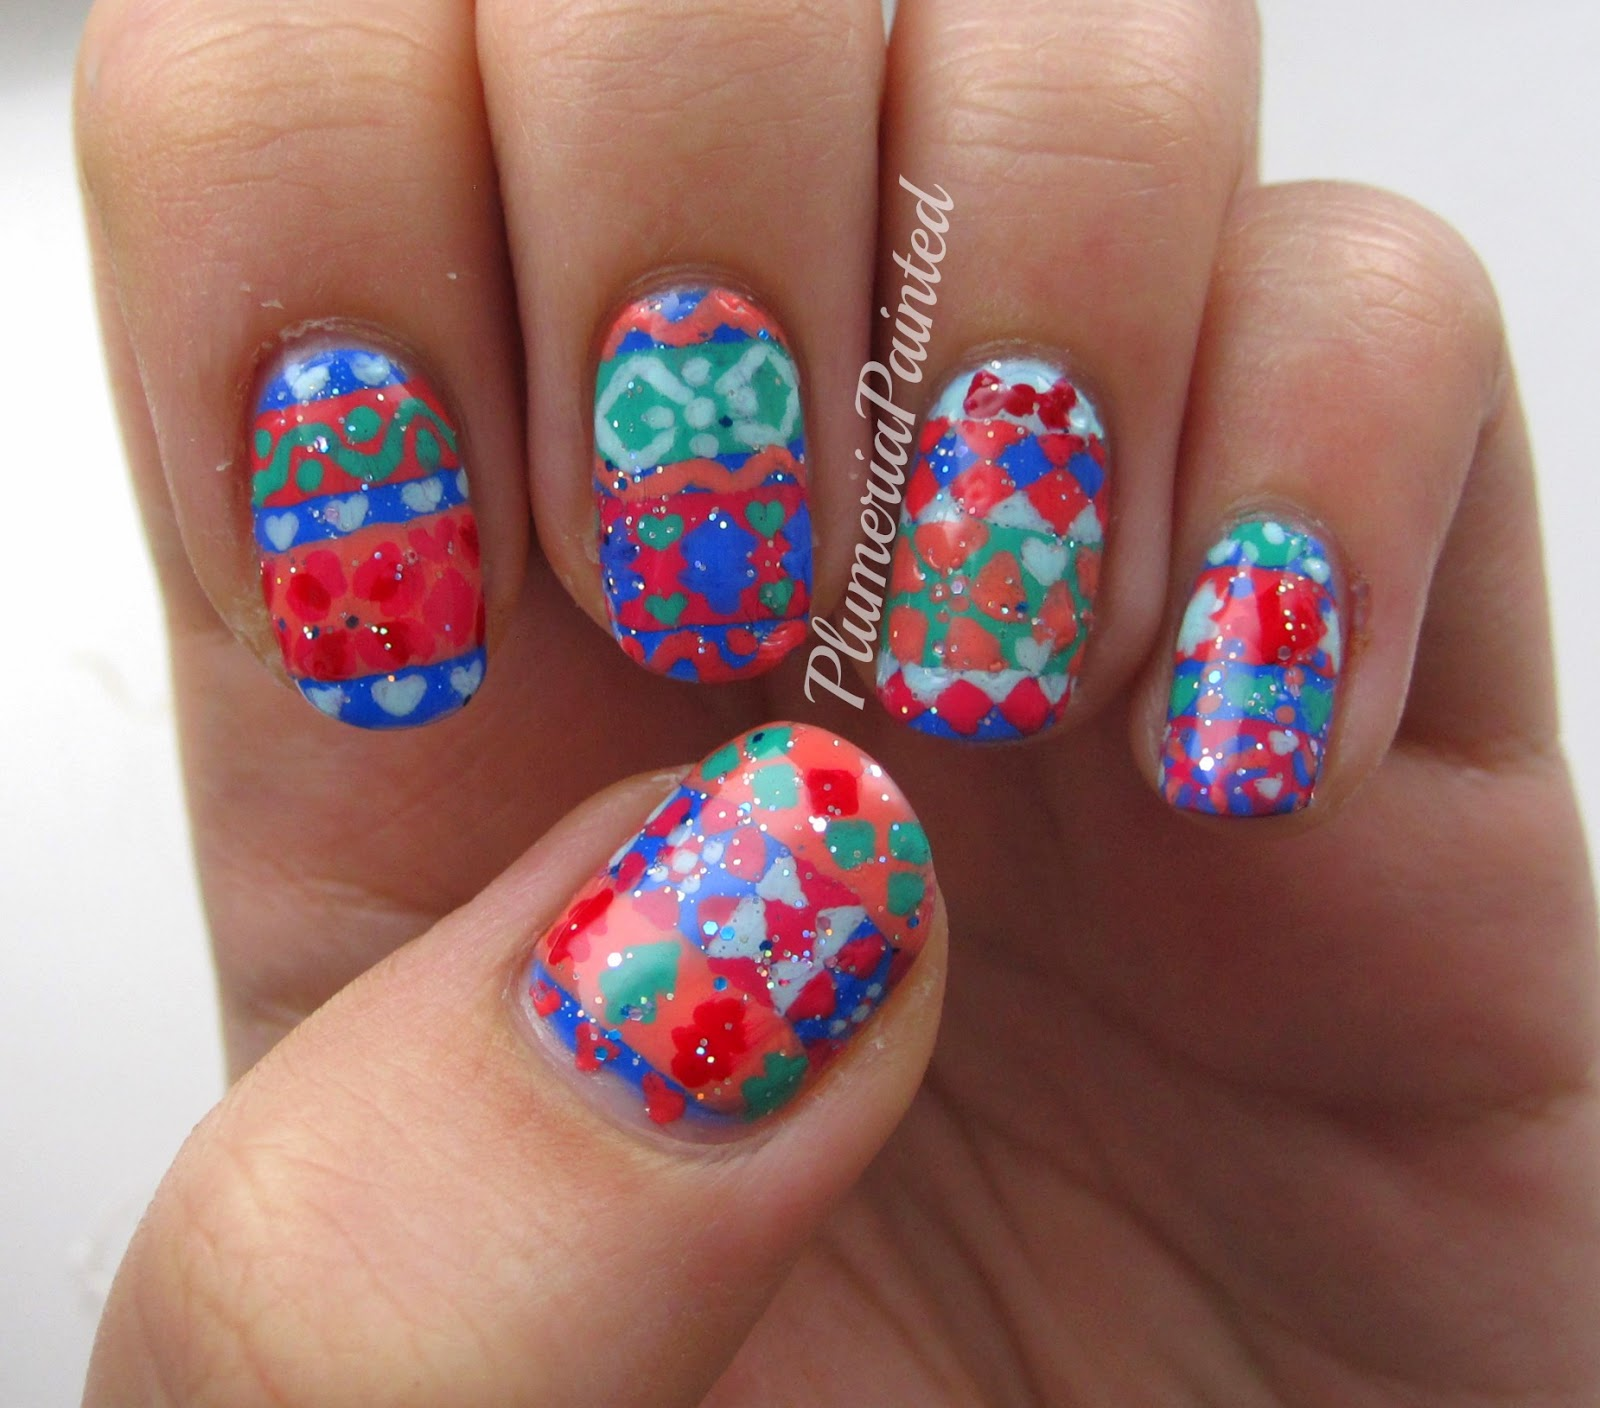 PlumeriaPainted: Bright Fair Isle Nail Art